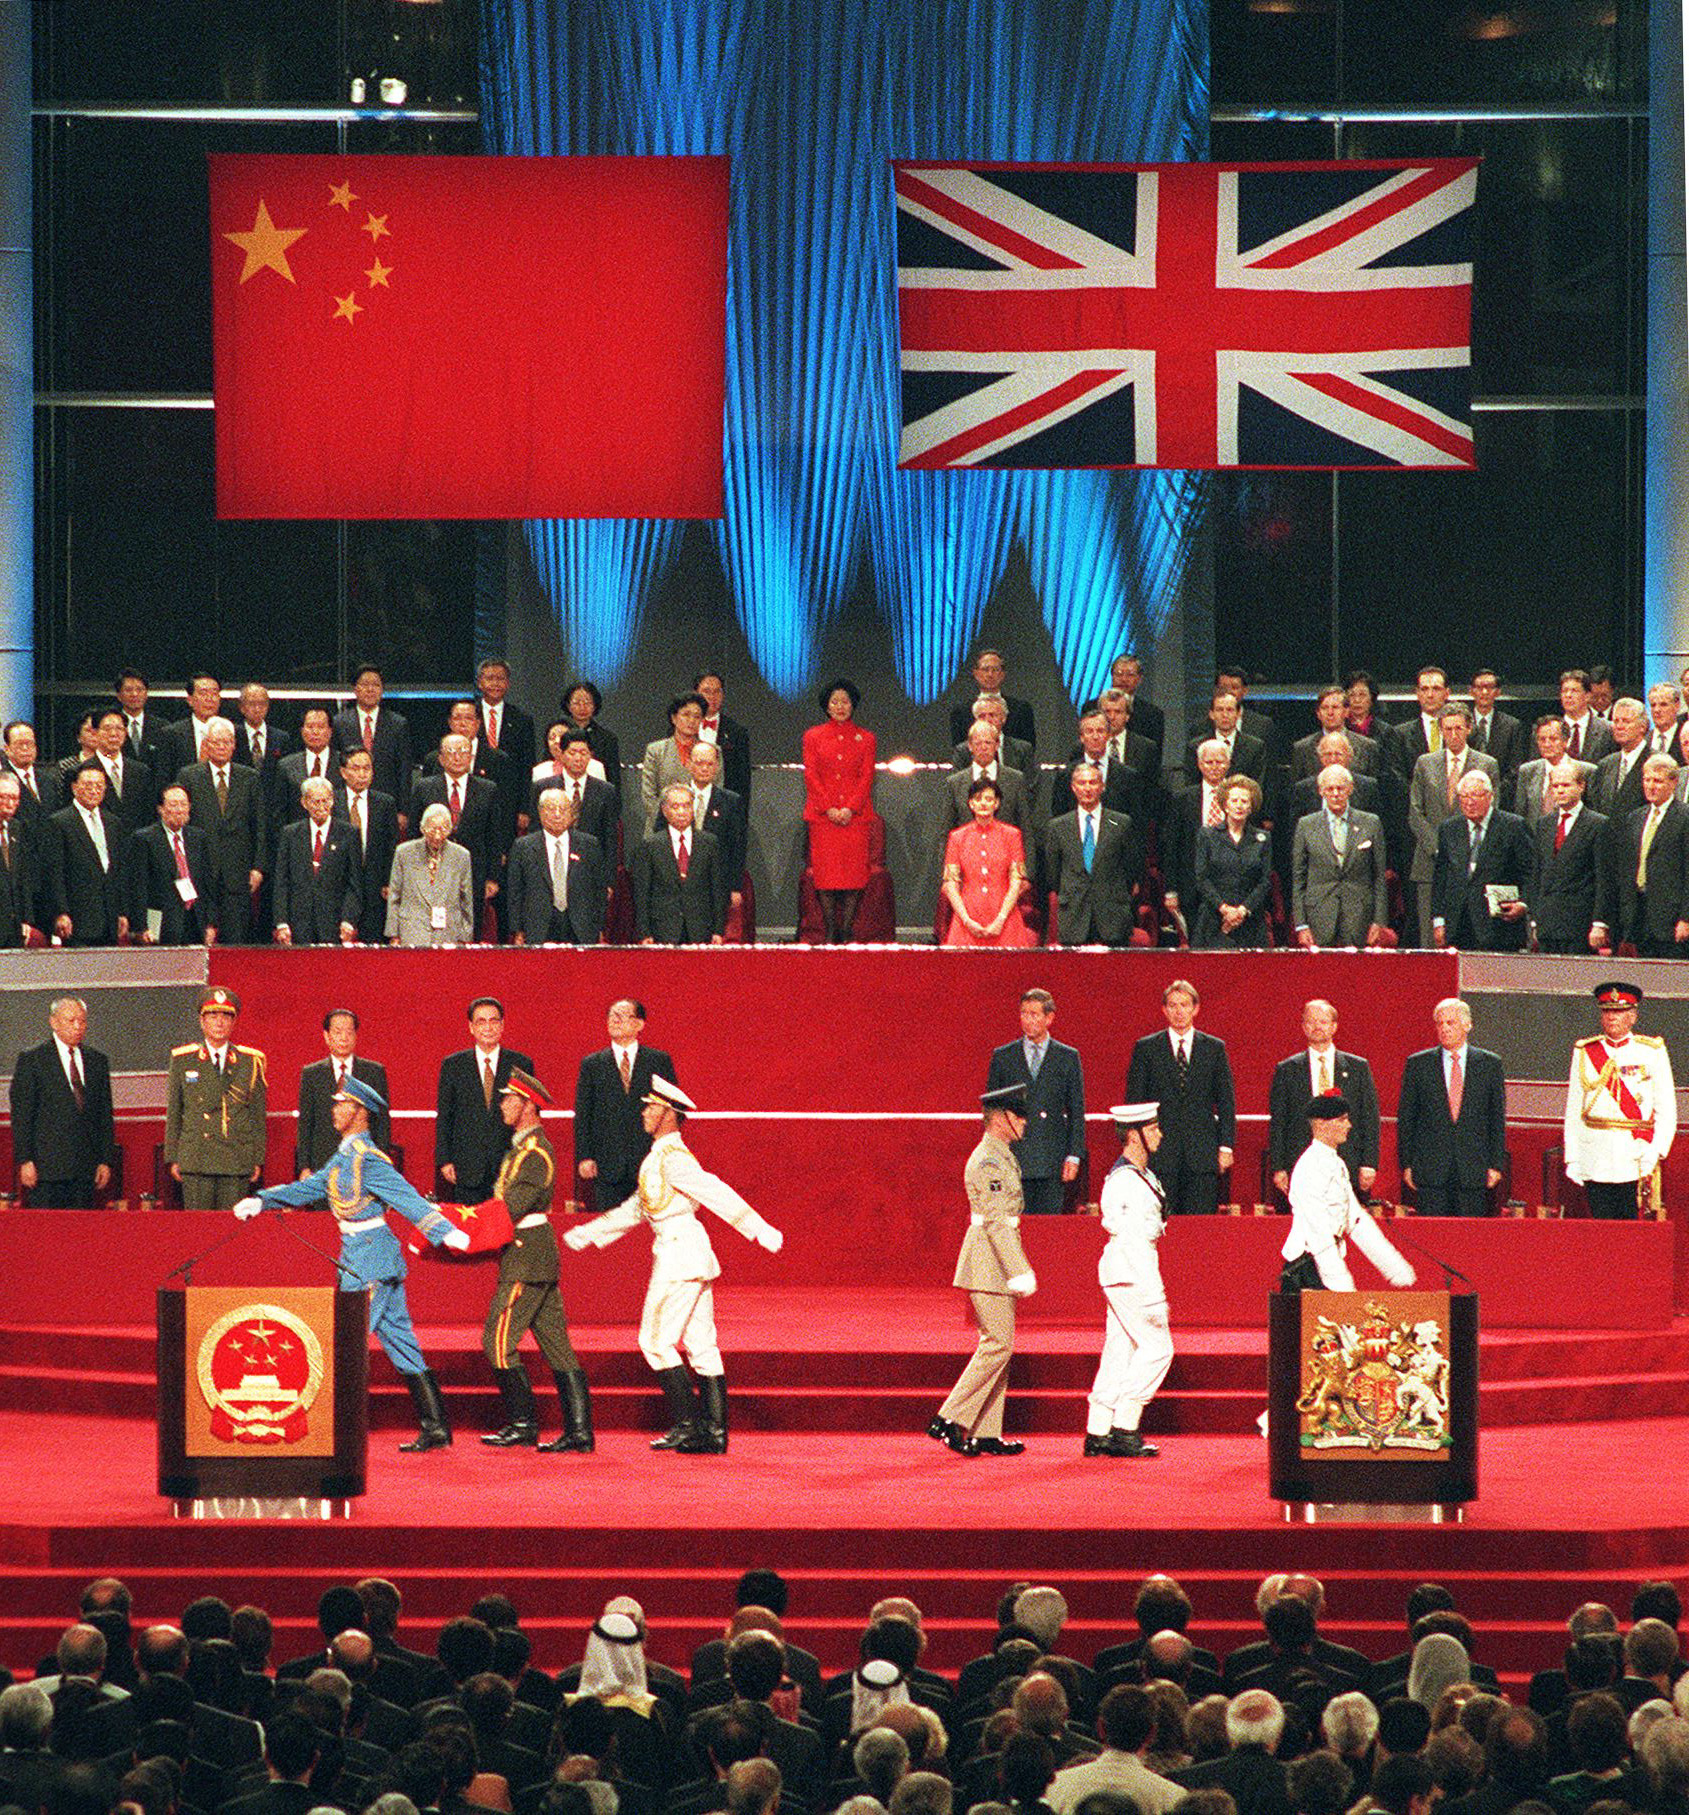 A Chinese soldier holds the national flag prior to its raising as the British military march, at right, during the handover ceremony at the Hong Kong Convention and Exhibition Centre on July 1, 1997. The event marked the end of 156 years of British colonial rule over the territory.